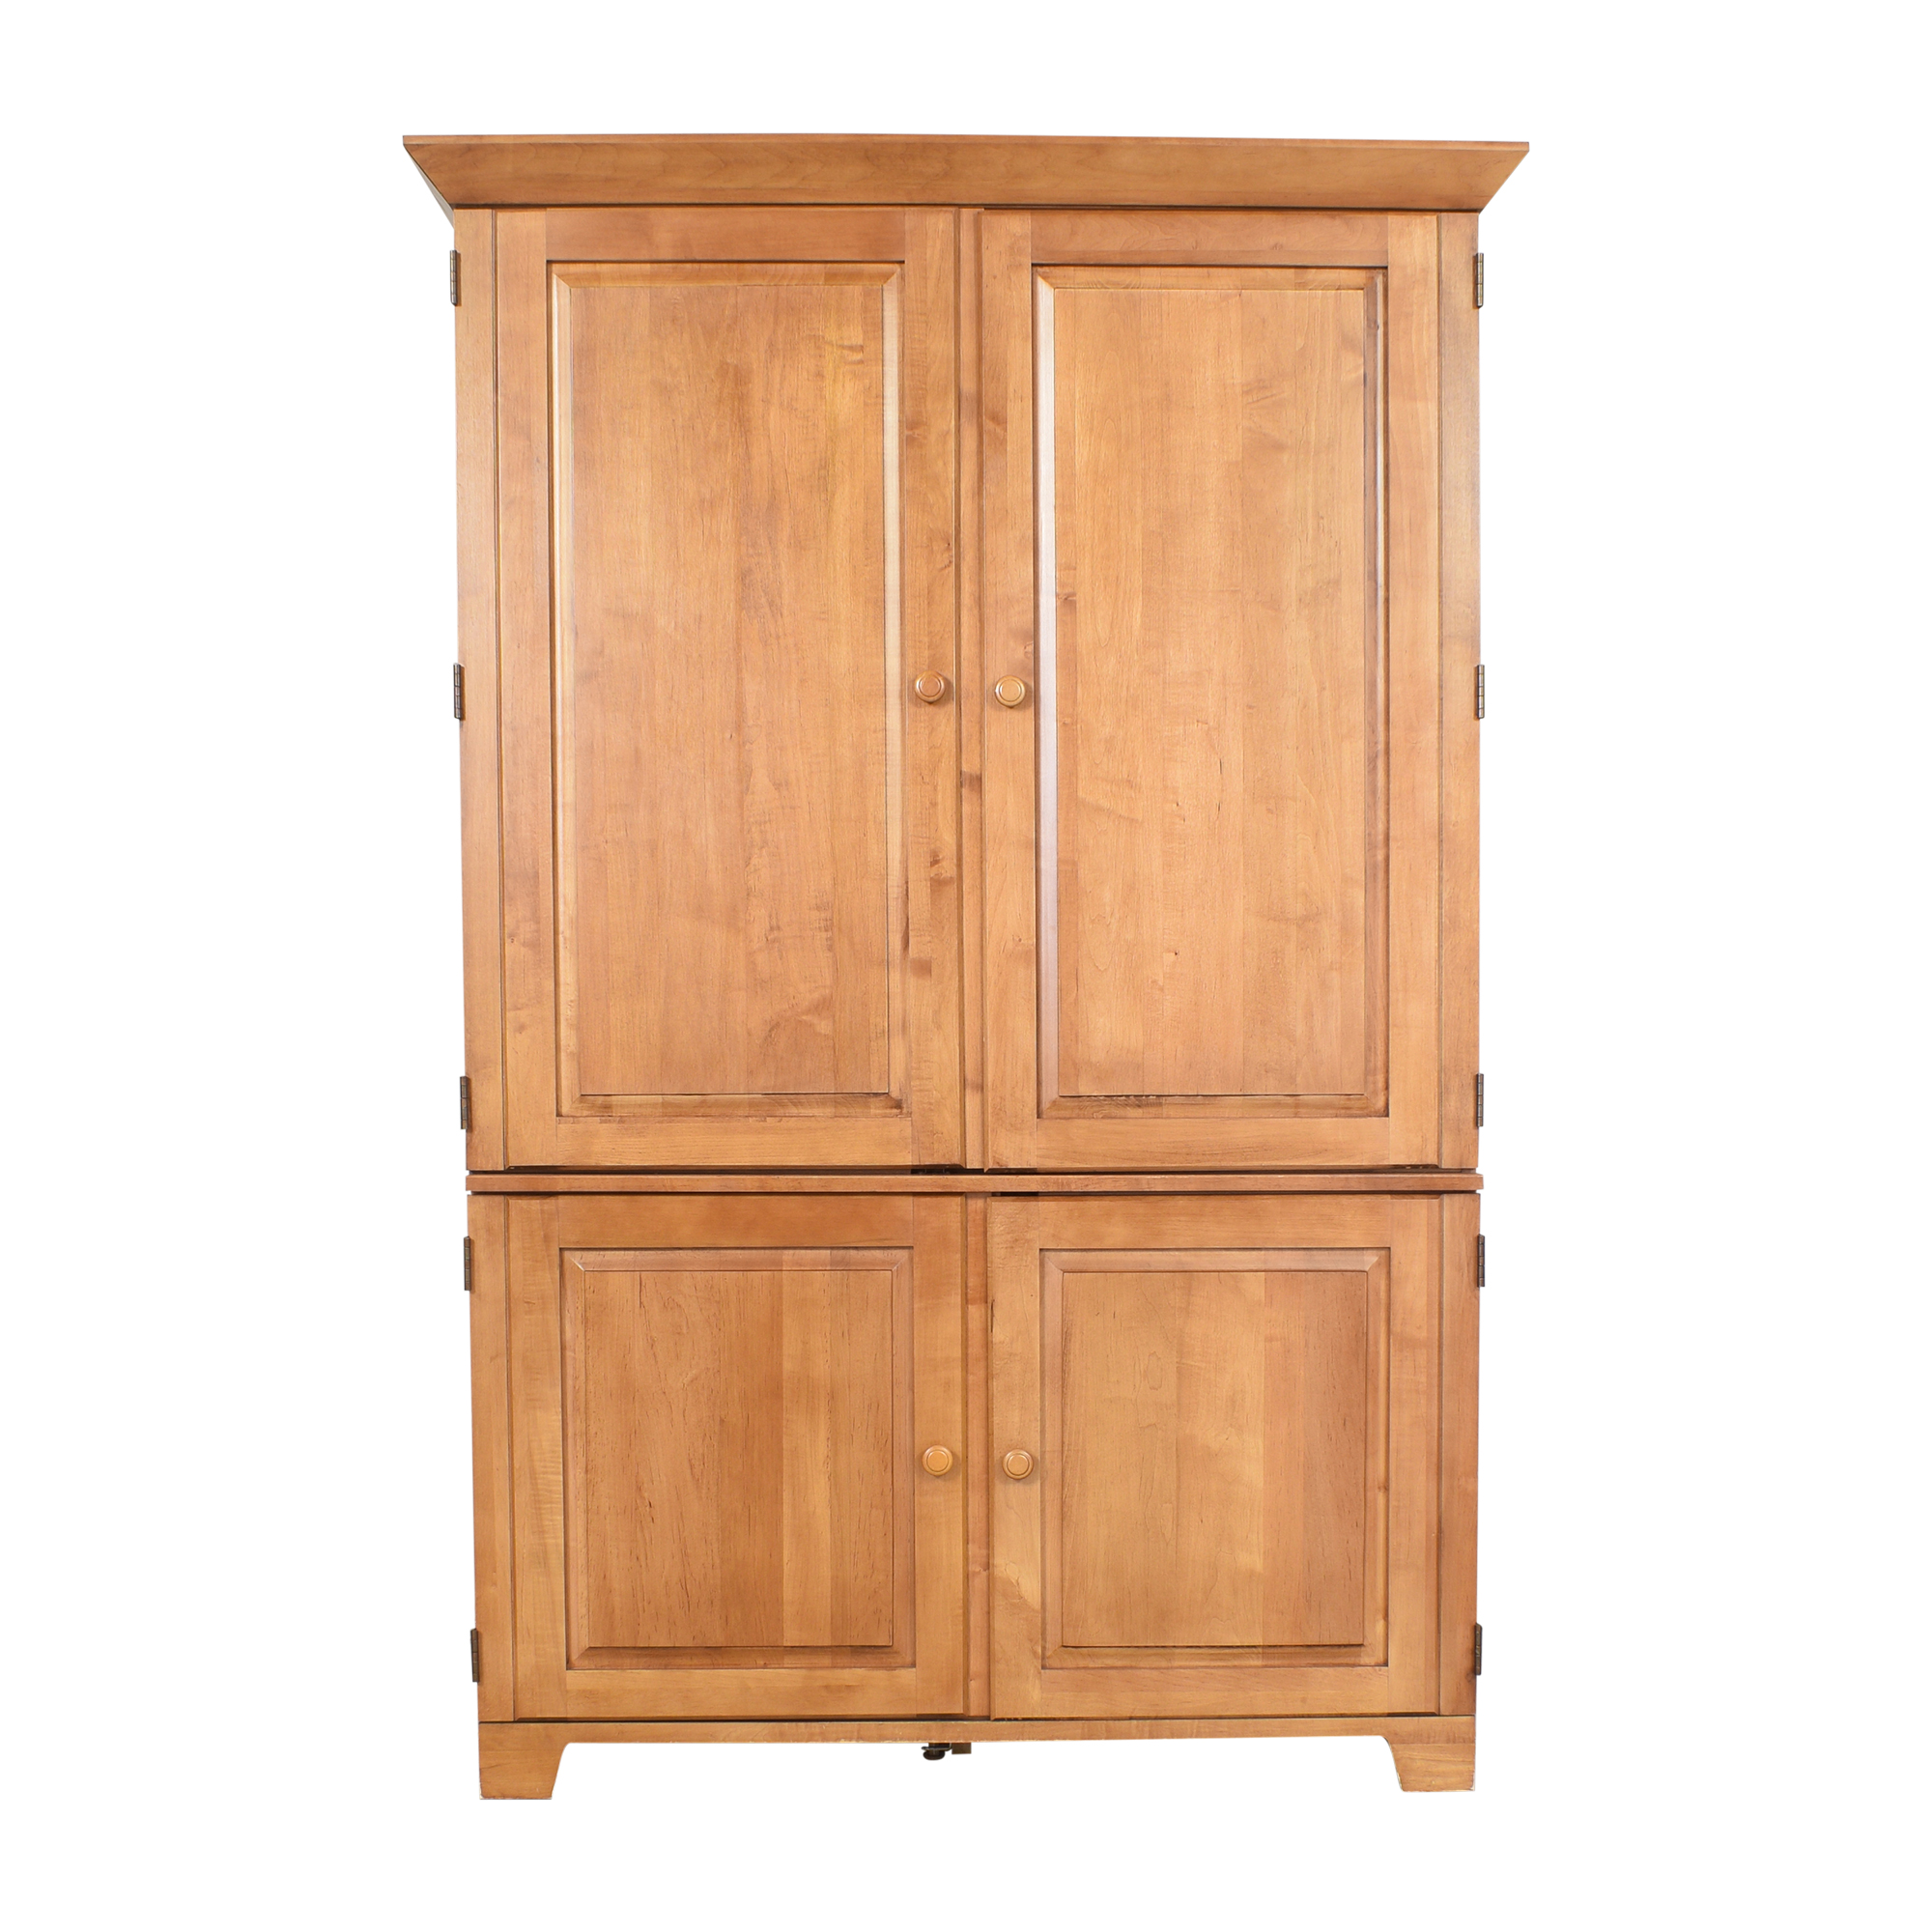 Ethan Allen Ethan Allen Country Colors Computer Armoire used